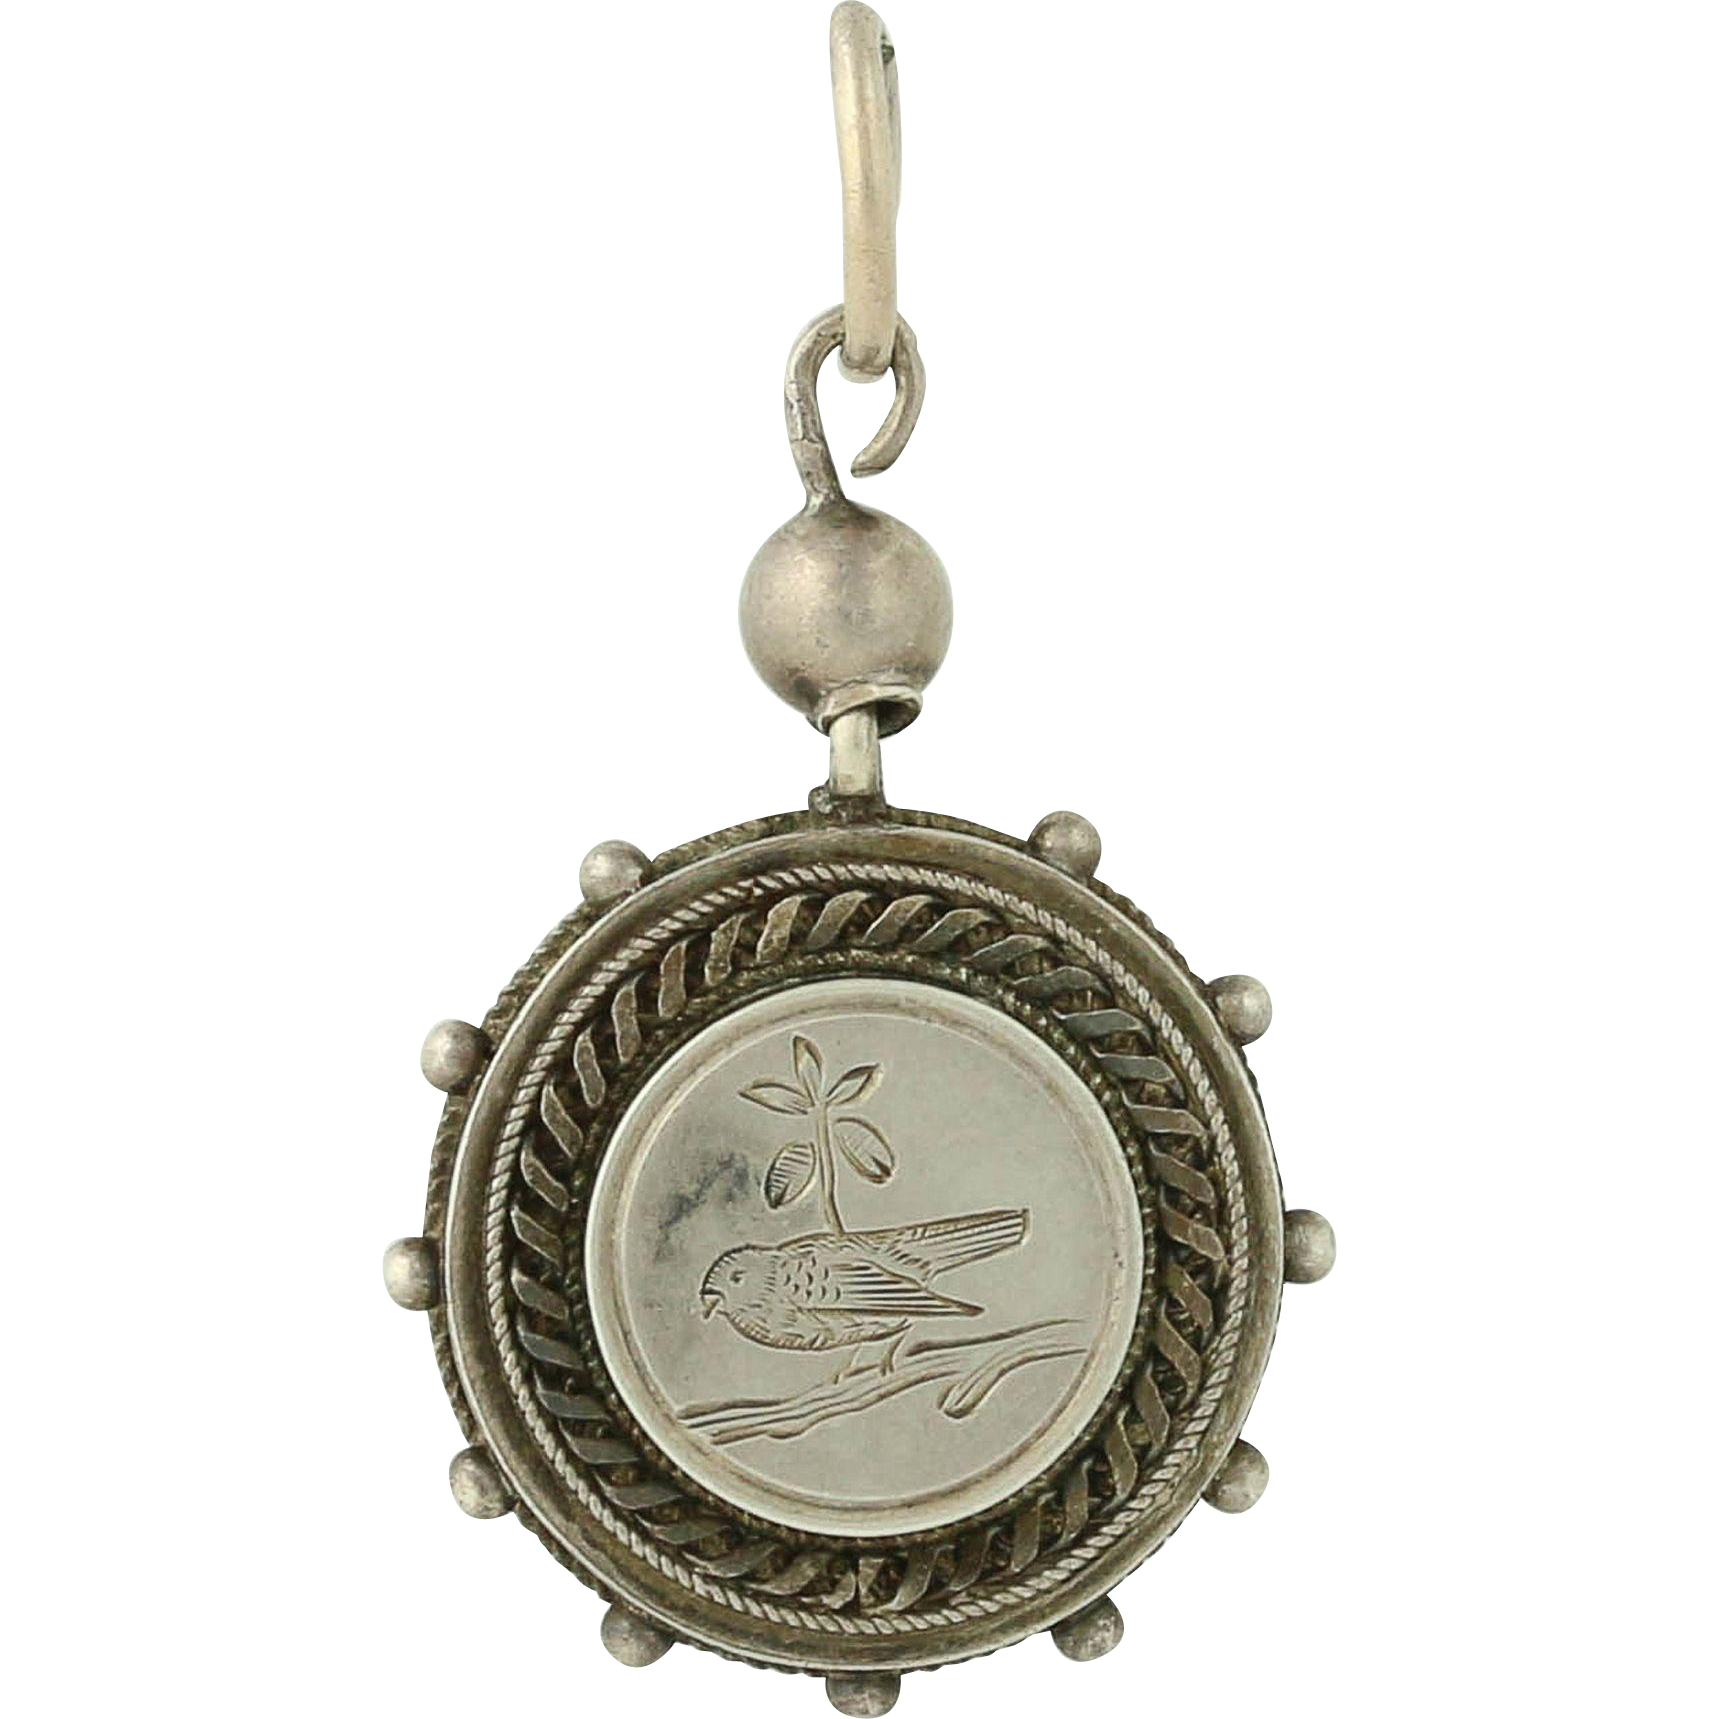 Victorian Bird Charm - Antique Sterling Silver Nature Pendant Keepsake